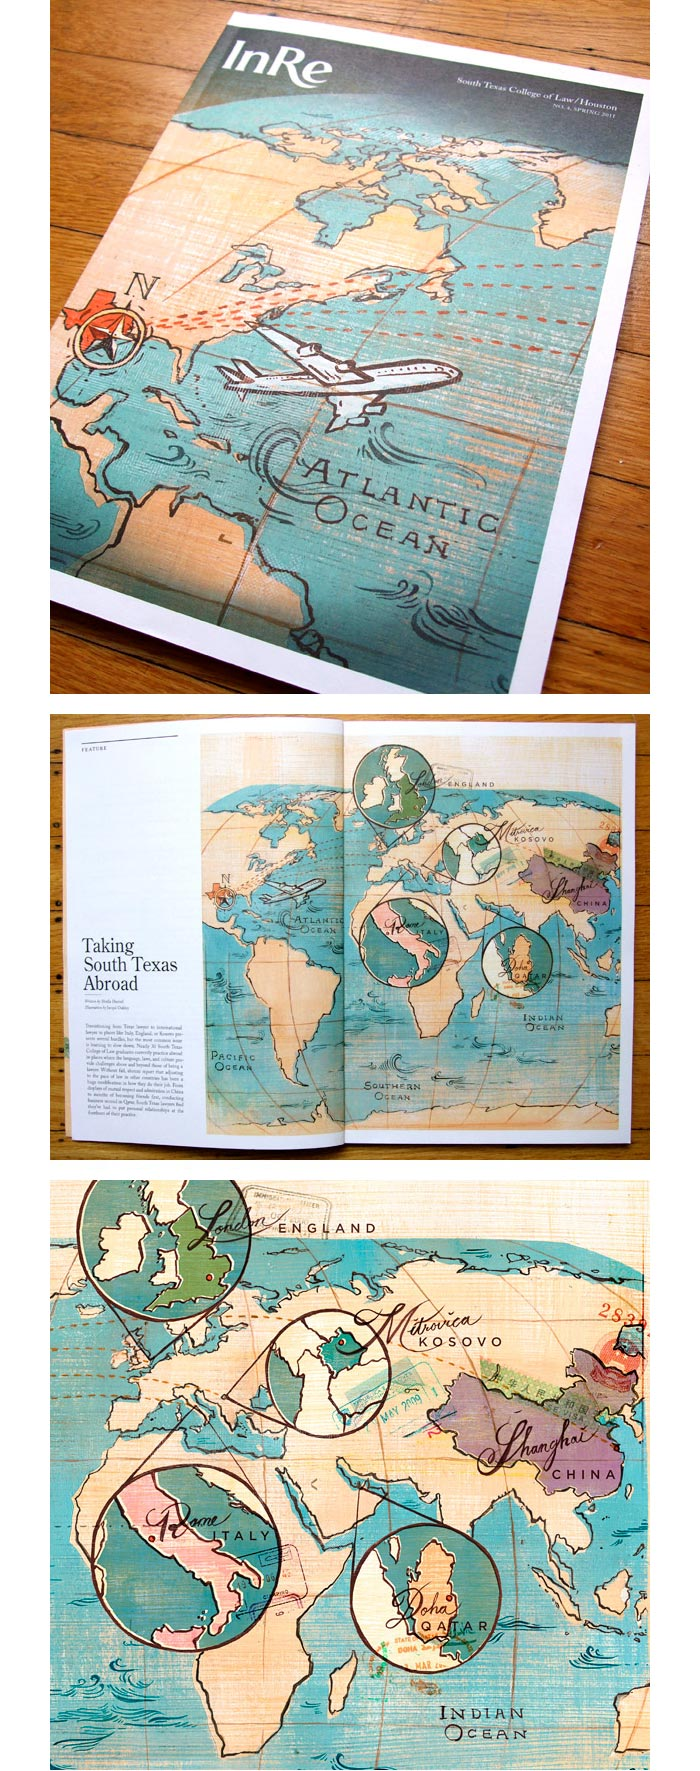 Jacqui Oakley / Illustration & book design - Taking South Texas Abroad